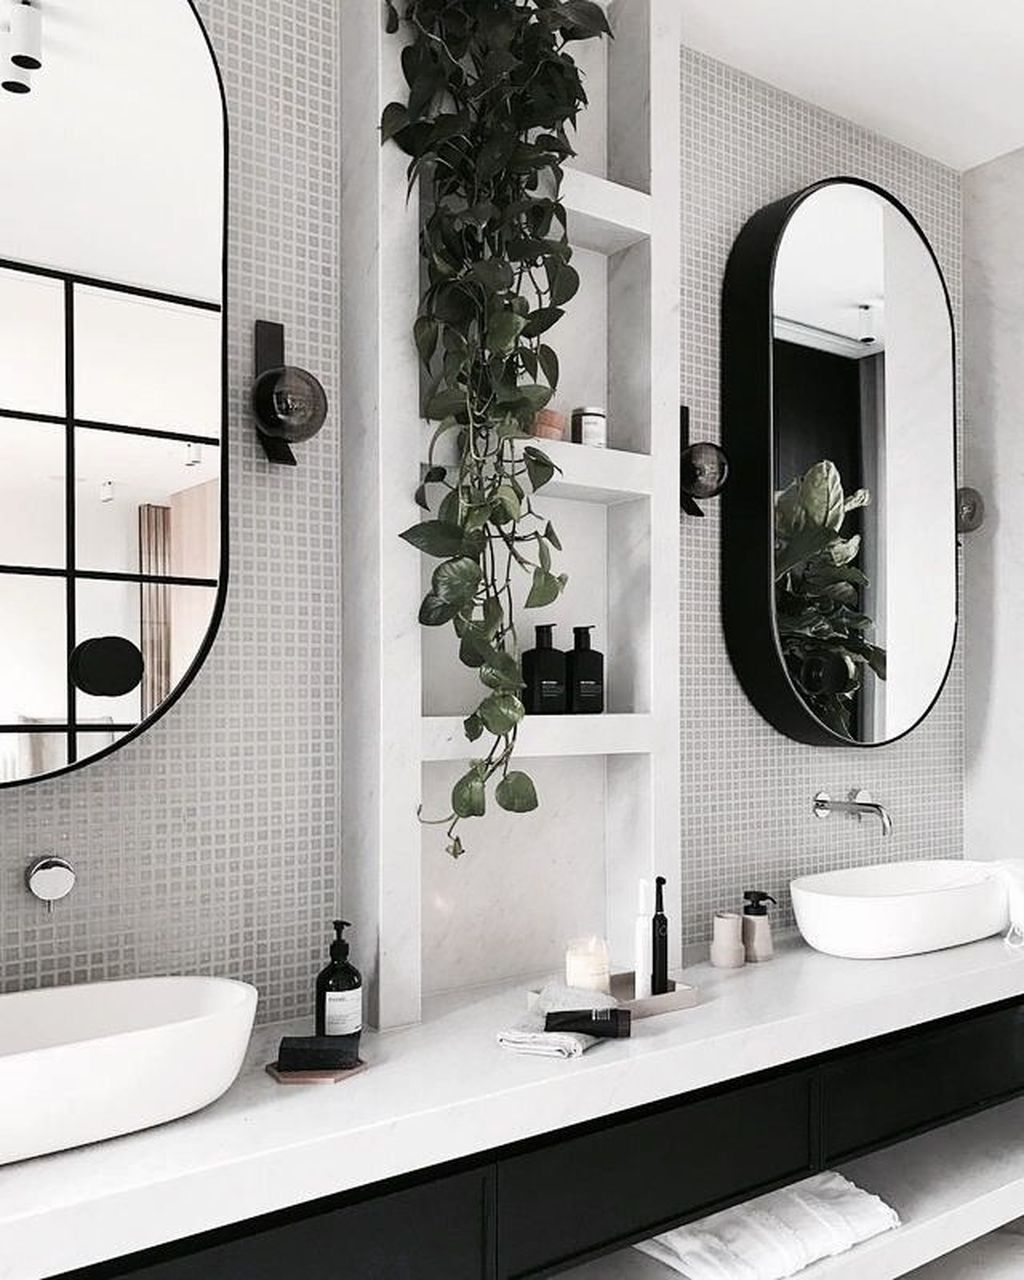 modern black and white bathroom with framed mirrors, tile backsplash, potted plant, white double sinks and black vanity